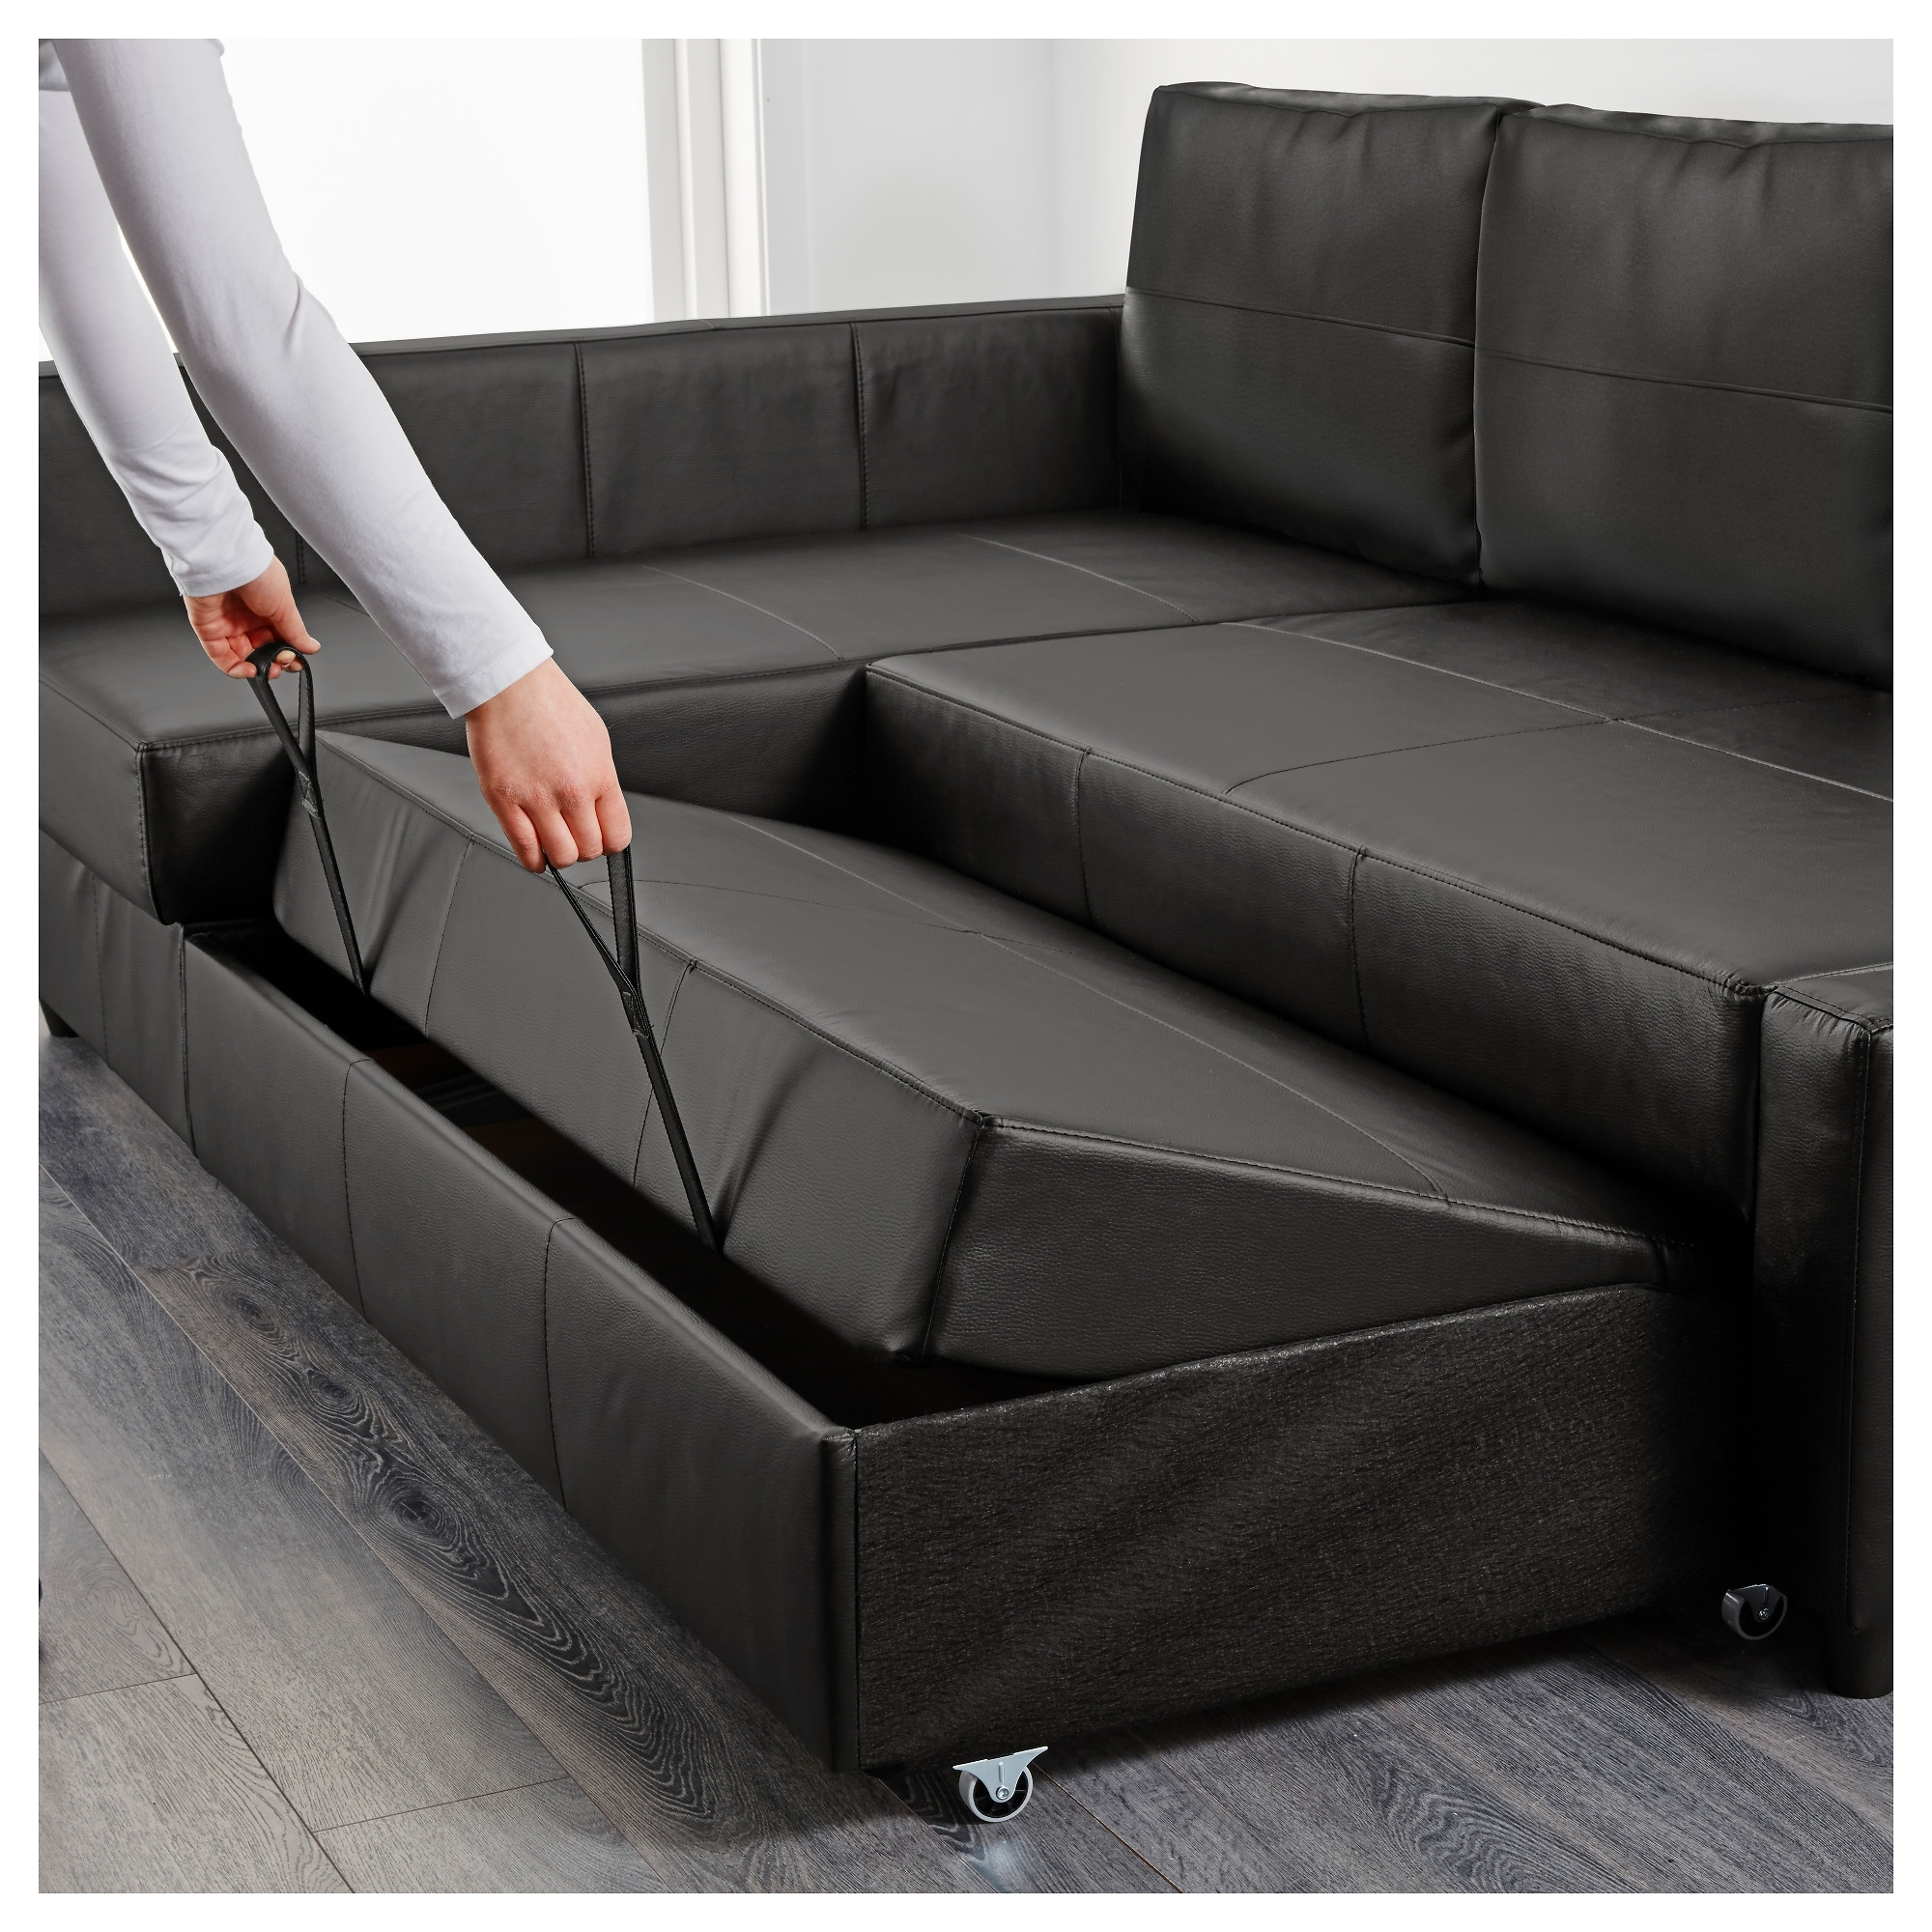 Friheten Corner Sofa Bed With Storage Bomstad Black – Ikea Intended For Ikea Corner Sofas With Storage (View 3 of 10)